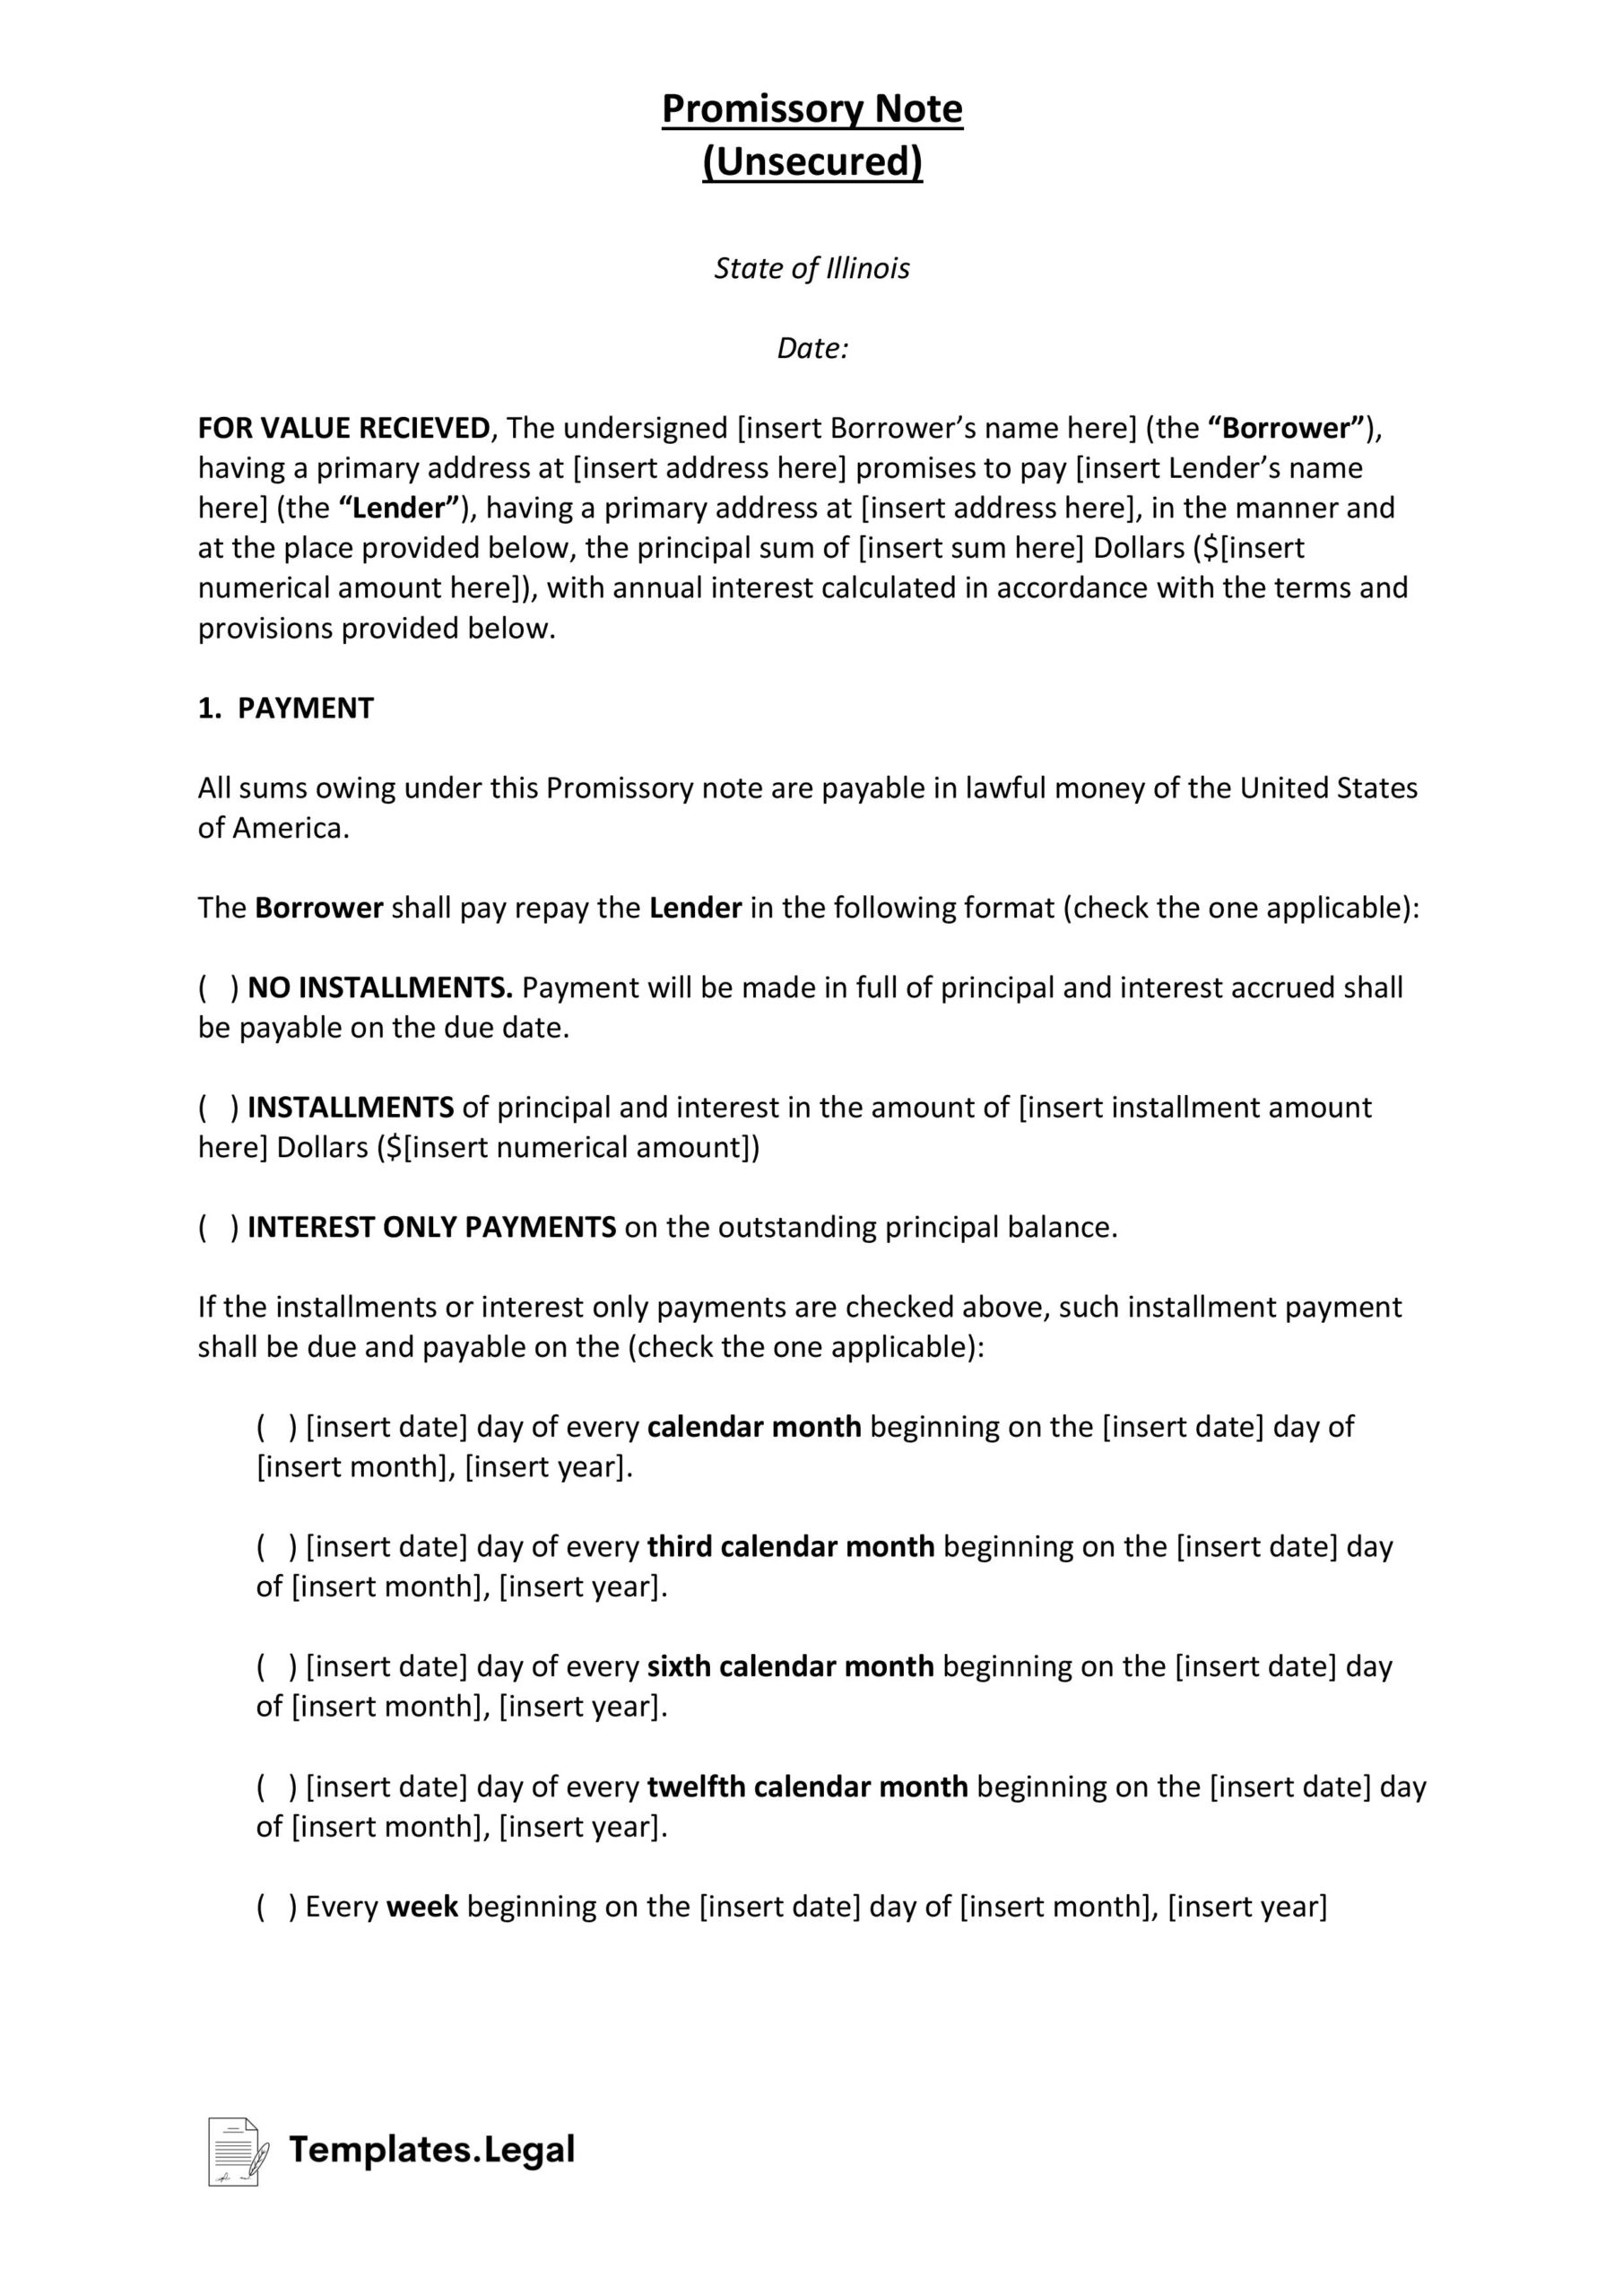 Illinois Unsecured Promissory Note - Templates.Legal